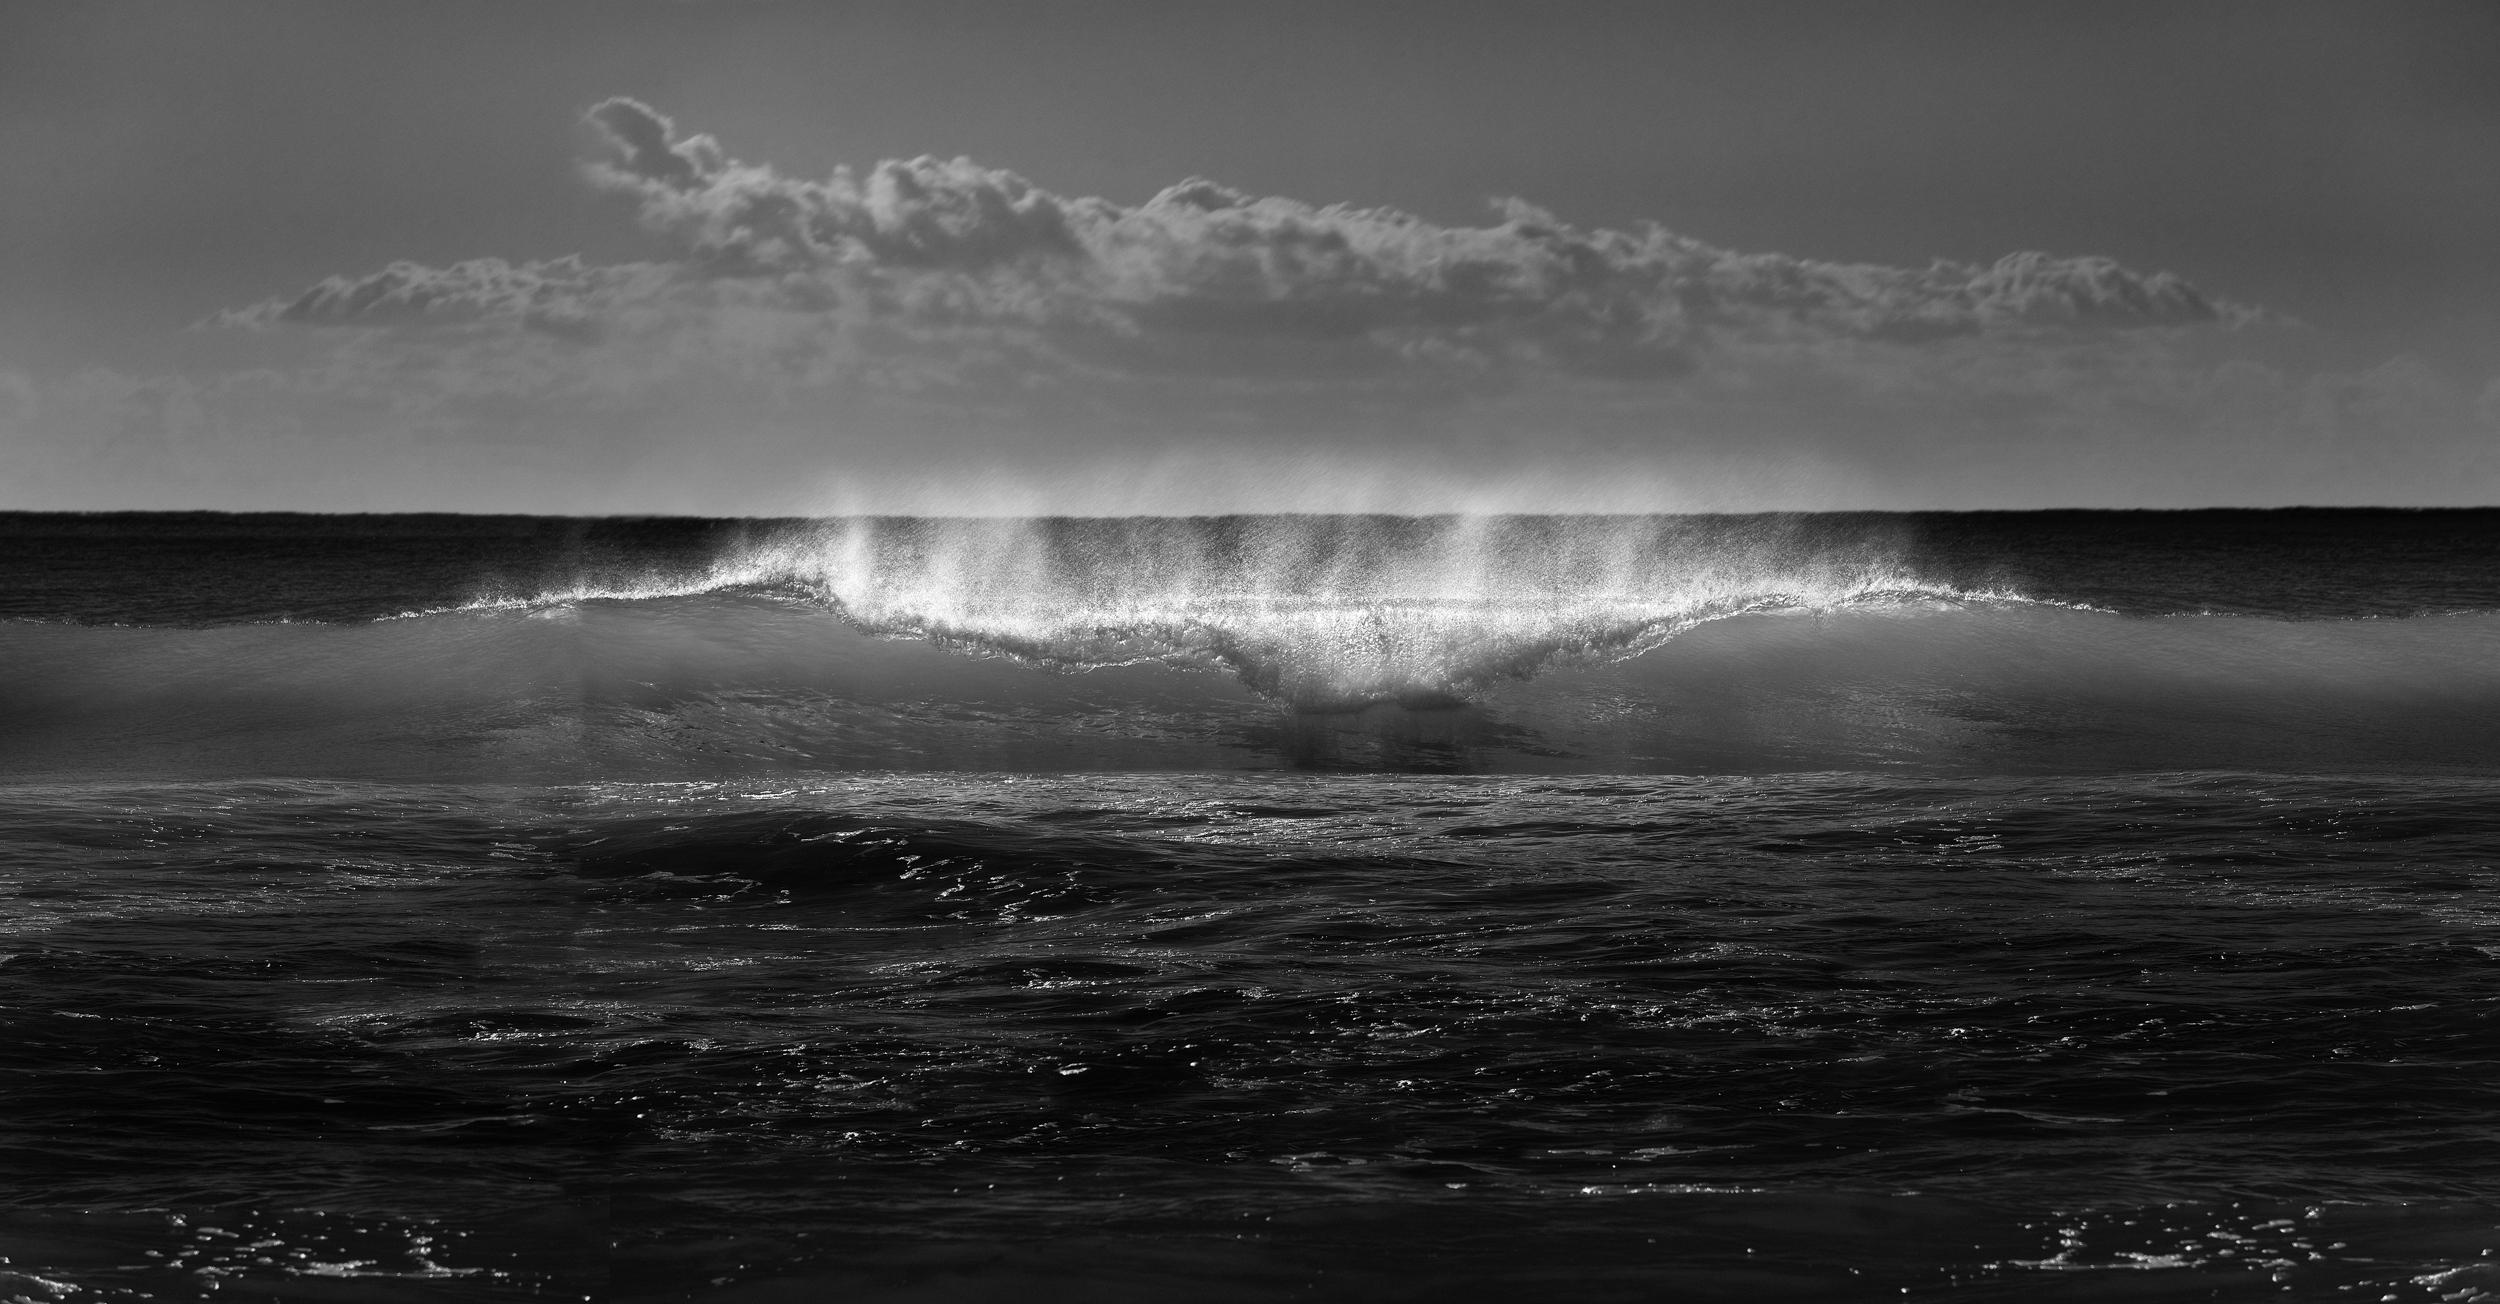 Wave 2 - Signed limited edition fine art print, Black and white photography